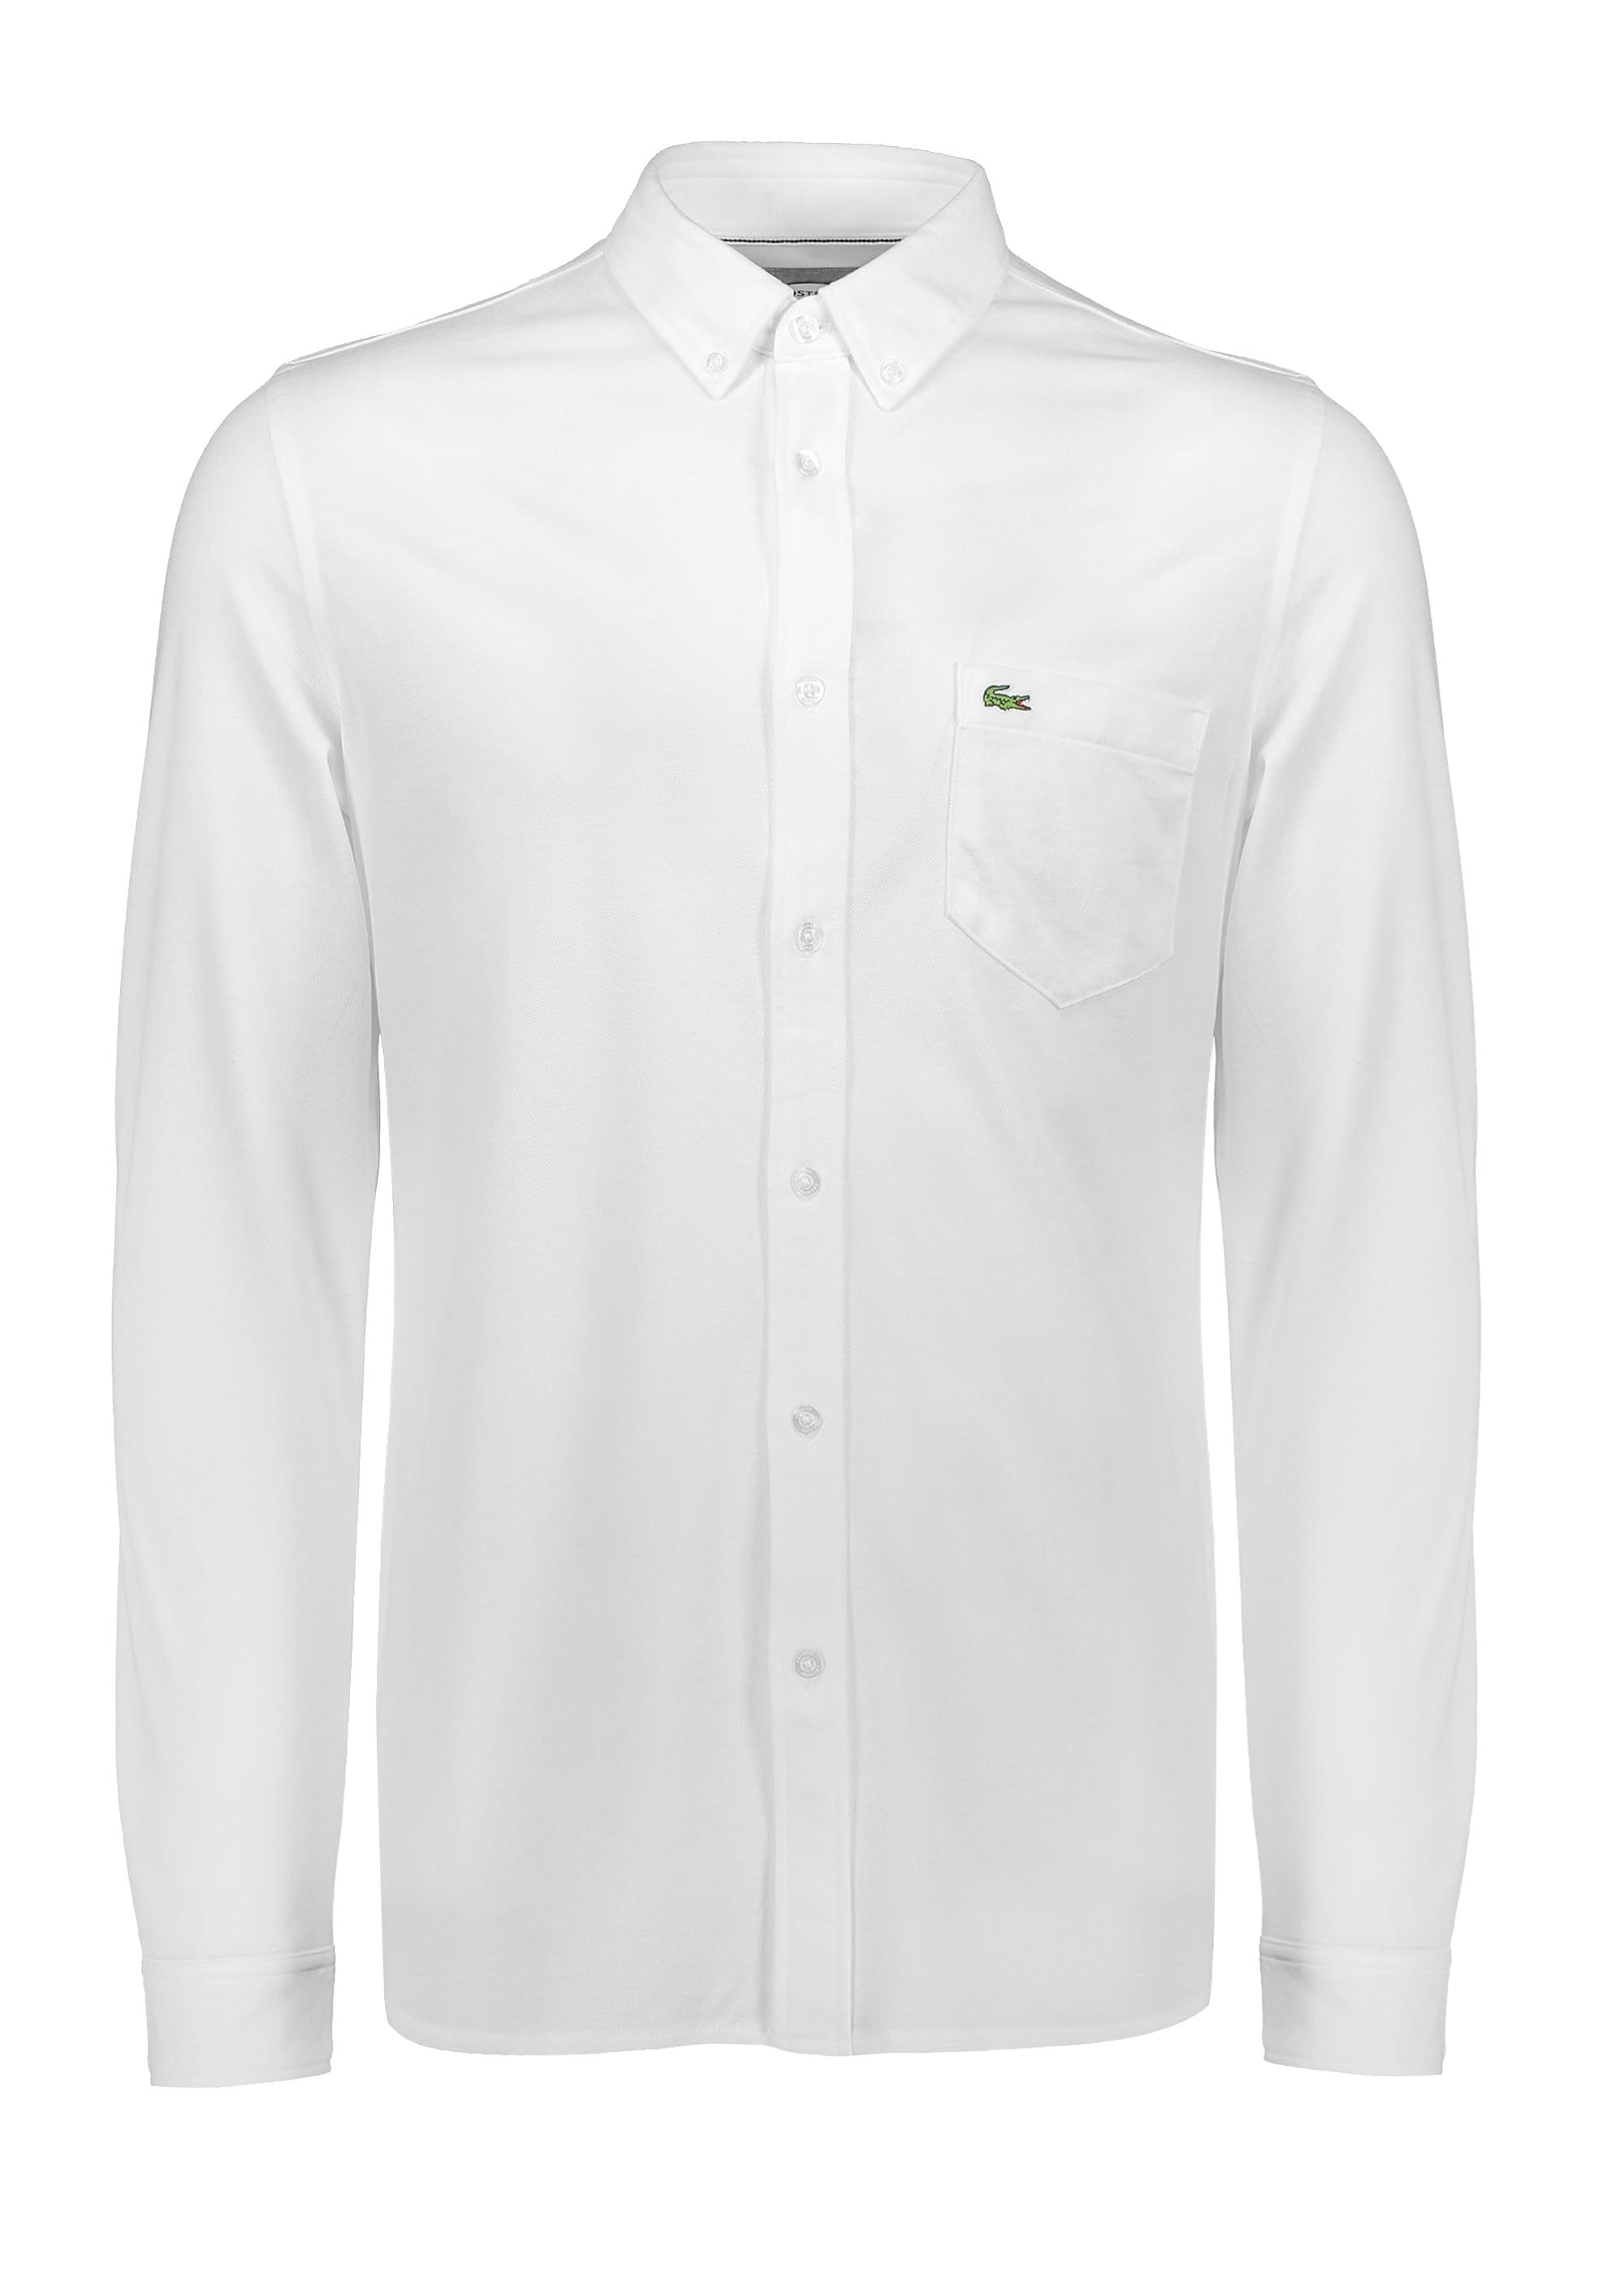 e404dfc7 Lacoste Pocket Shirt - White - Triads Mens from Triads UK